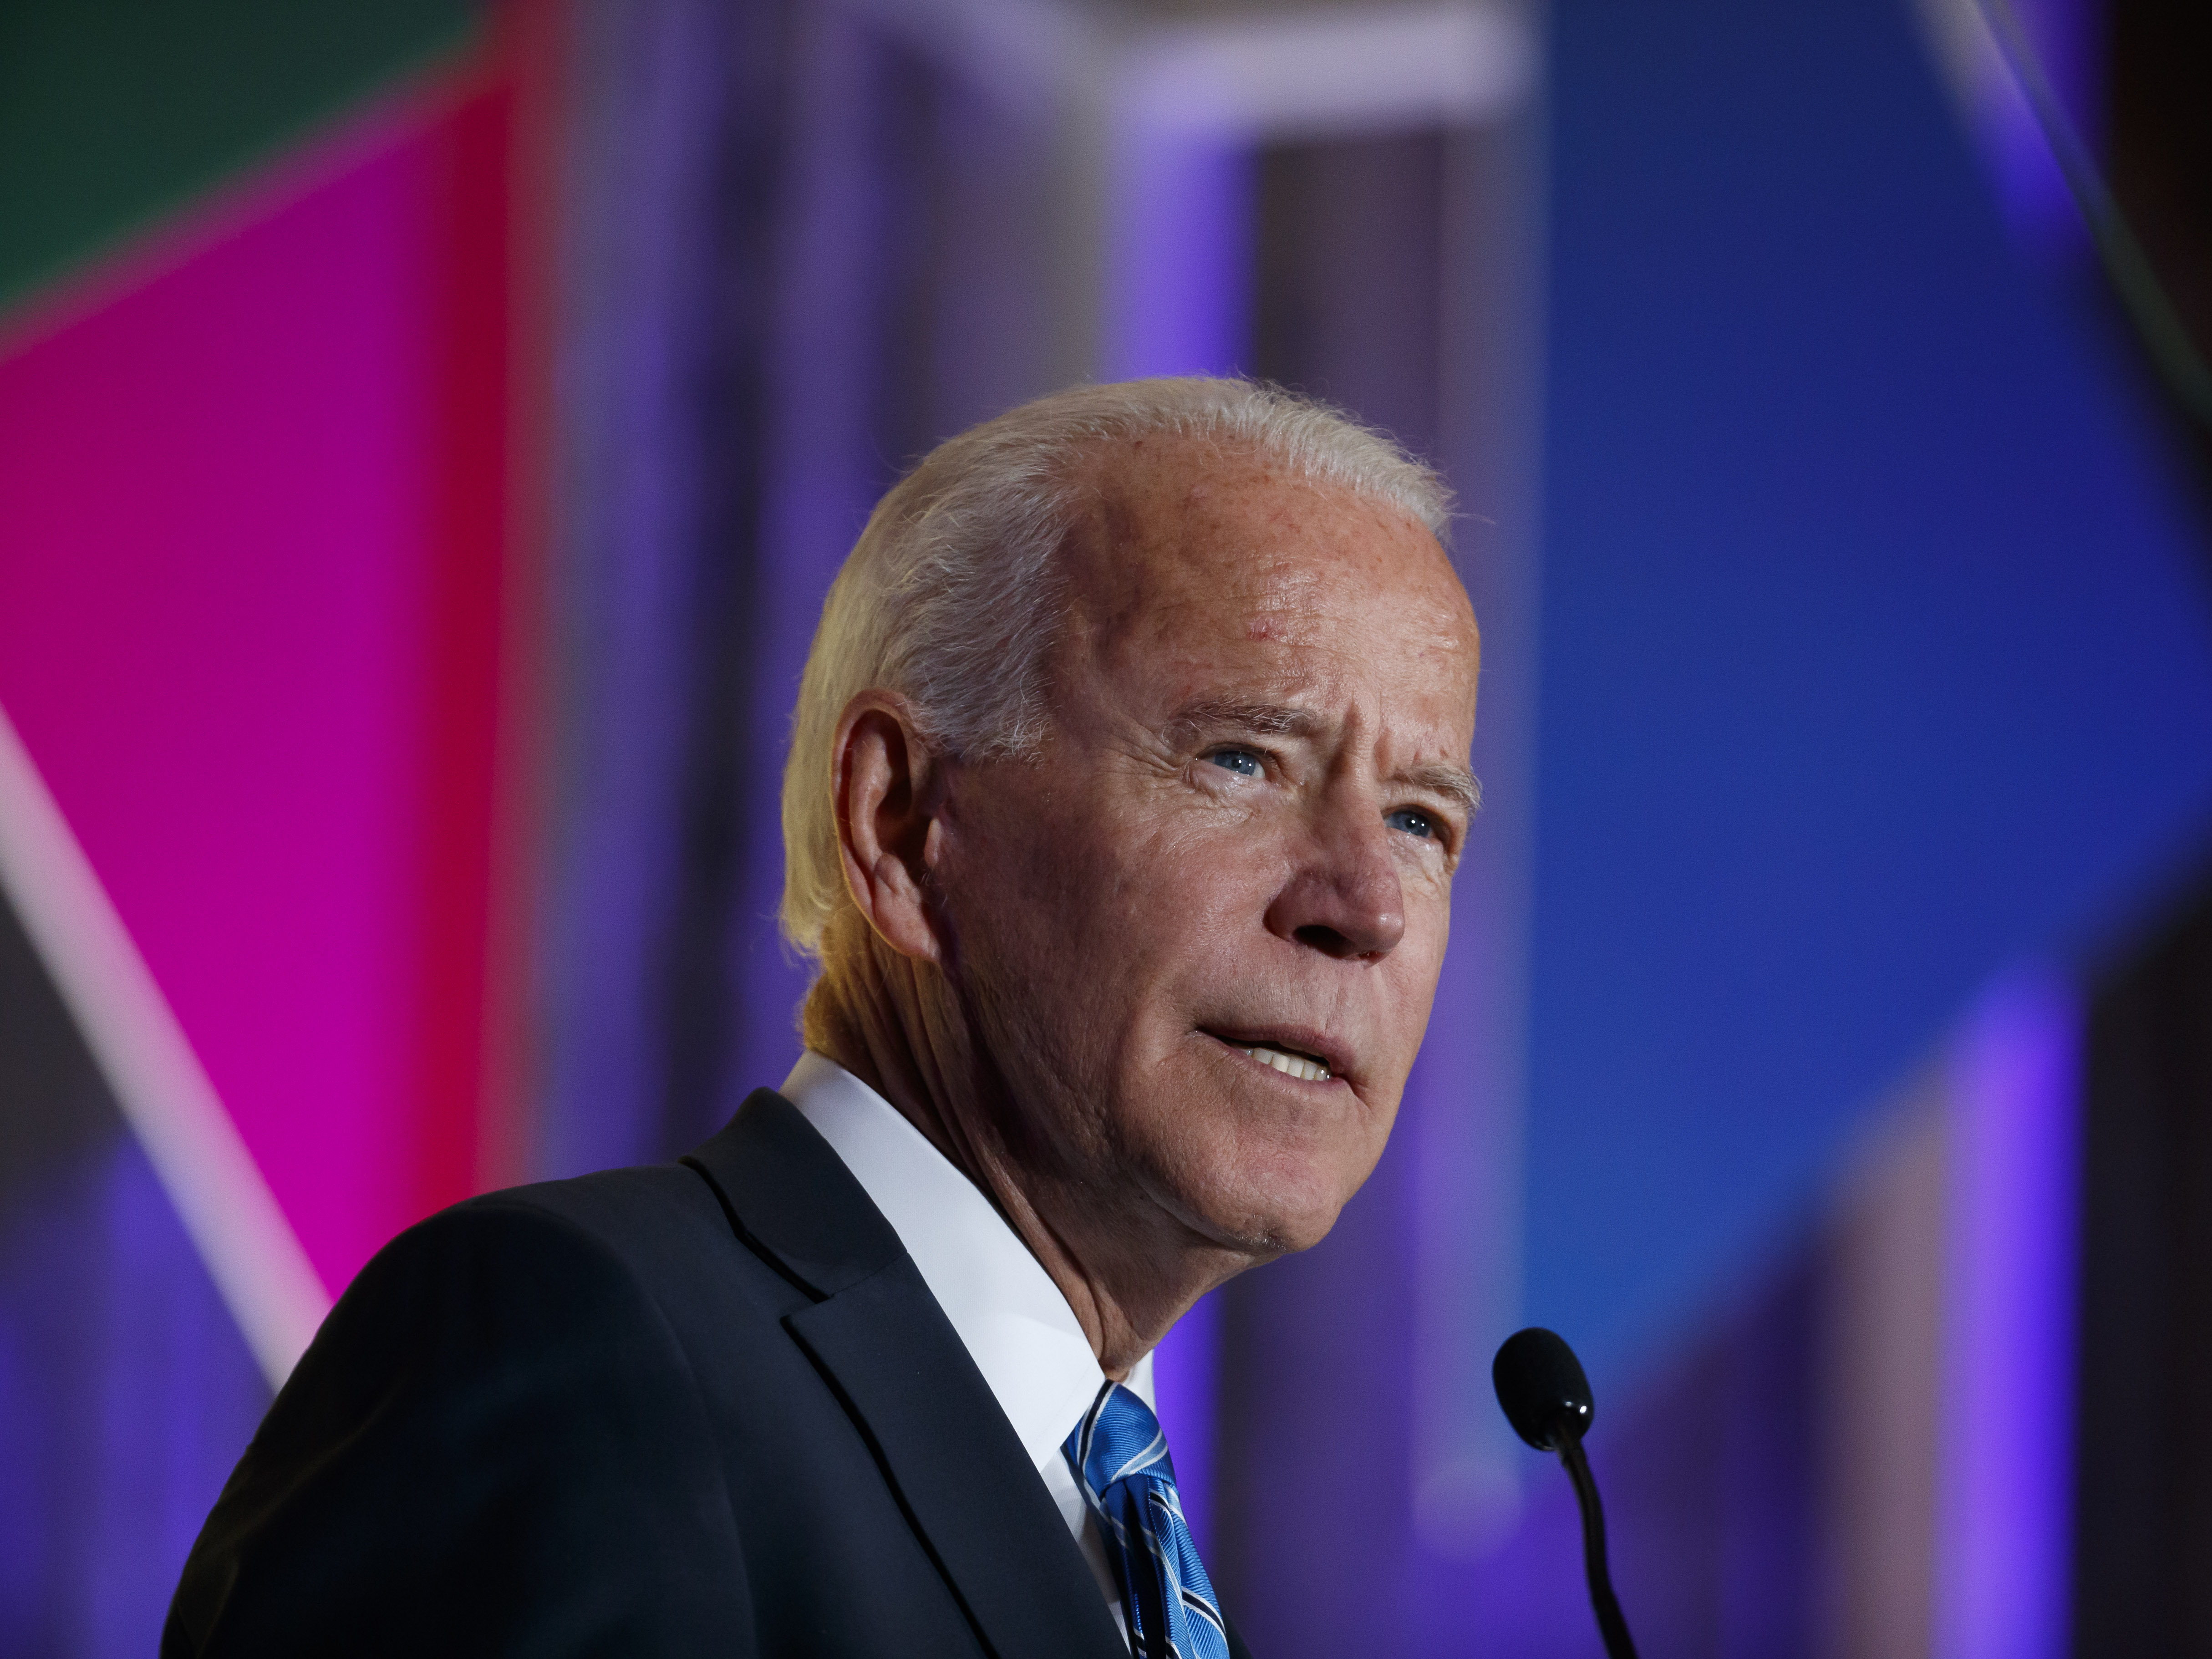 After Slamming Trump, Biden Apologizes For Referring To 'Partisan Lynching' In 1998